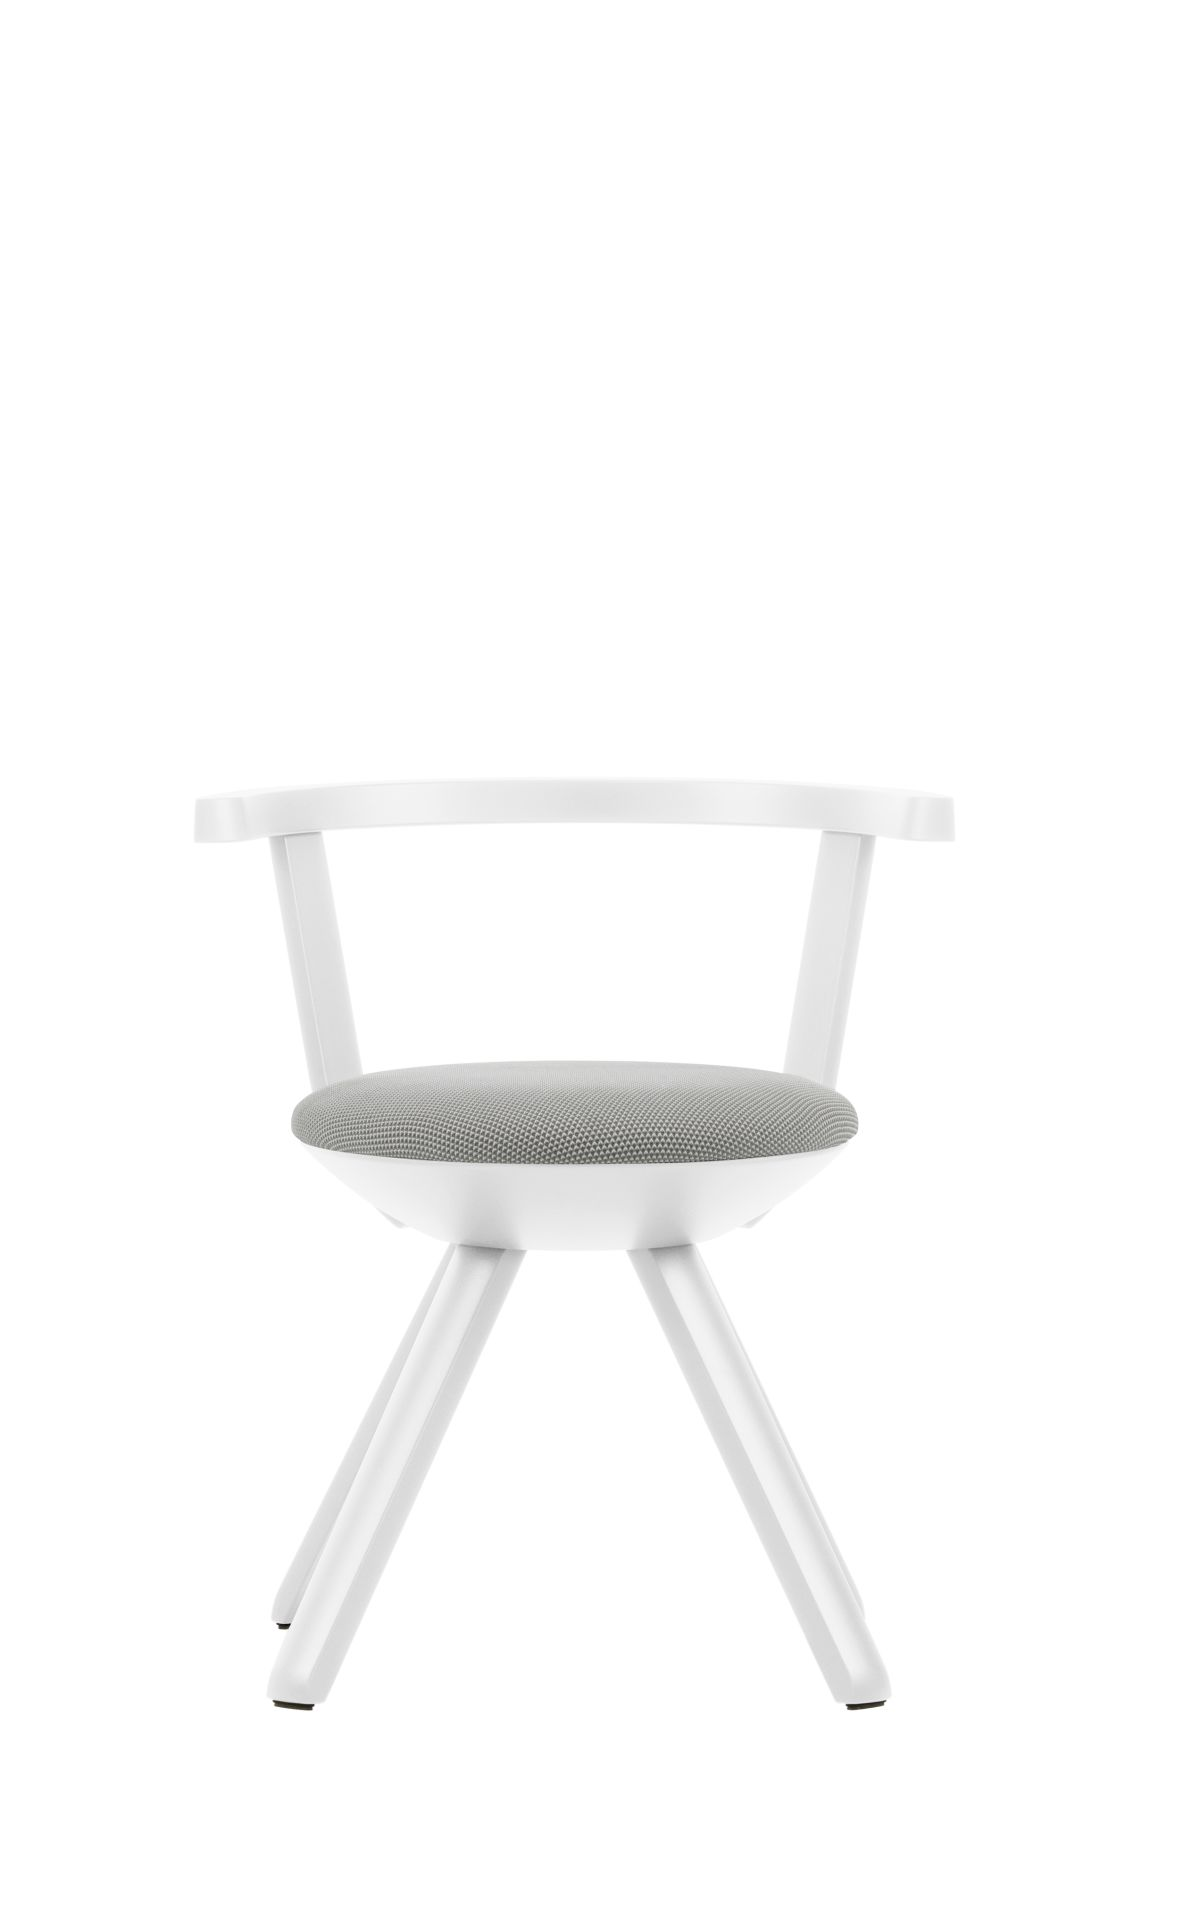 Rival-Chair-Kg001-White-Lacquer-Light-Grey-Cream-3D-Knit-Upholstery